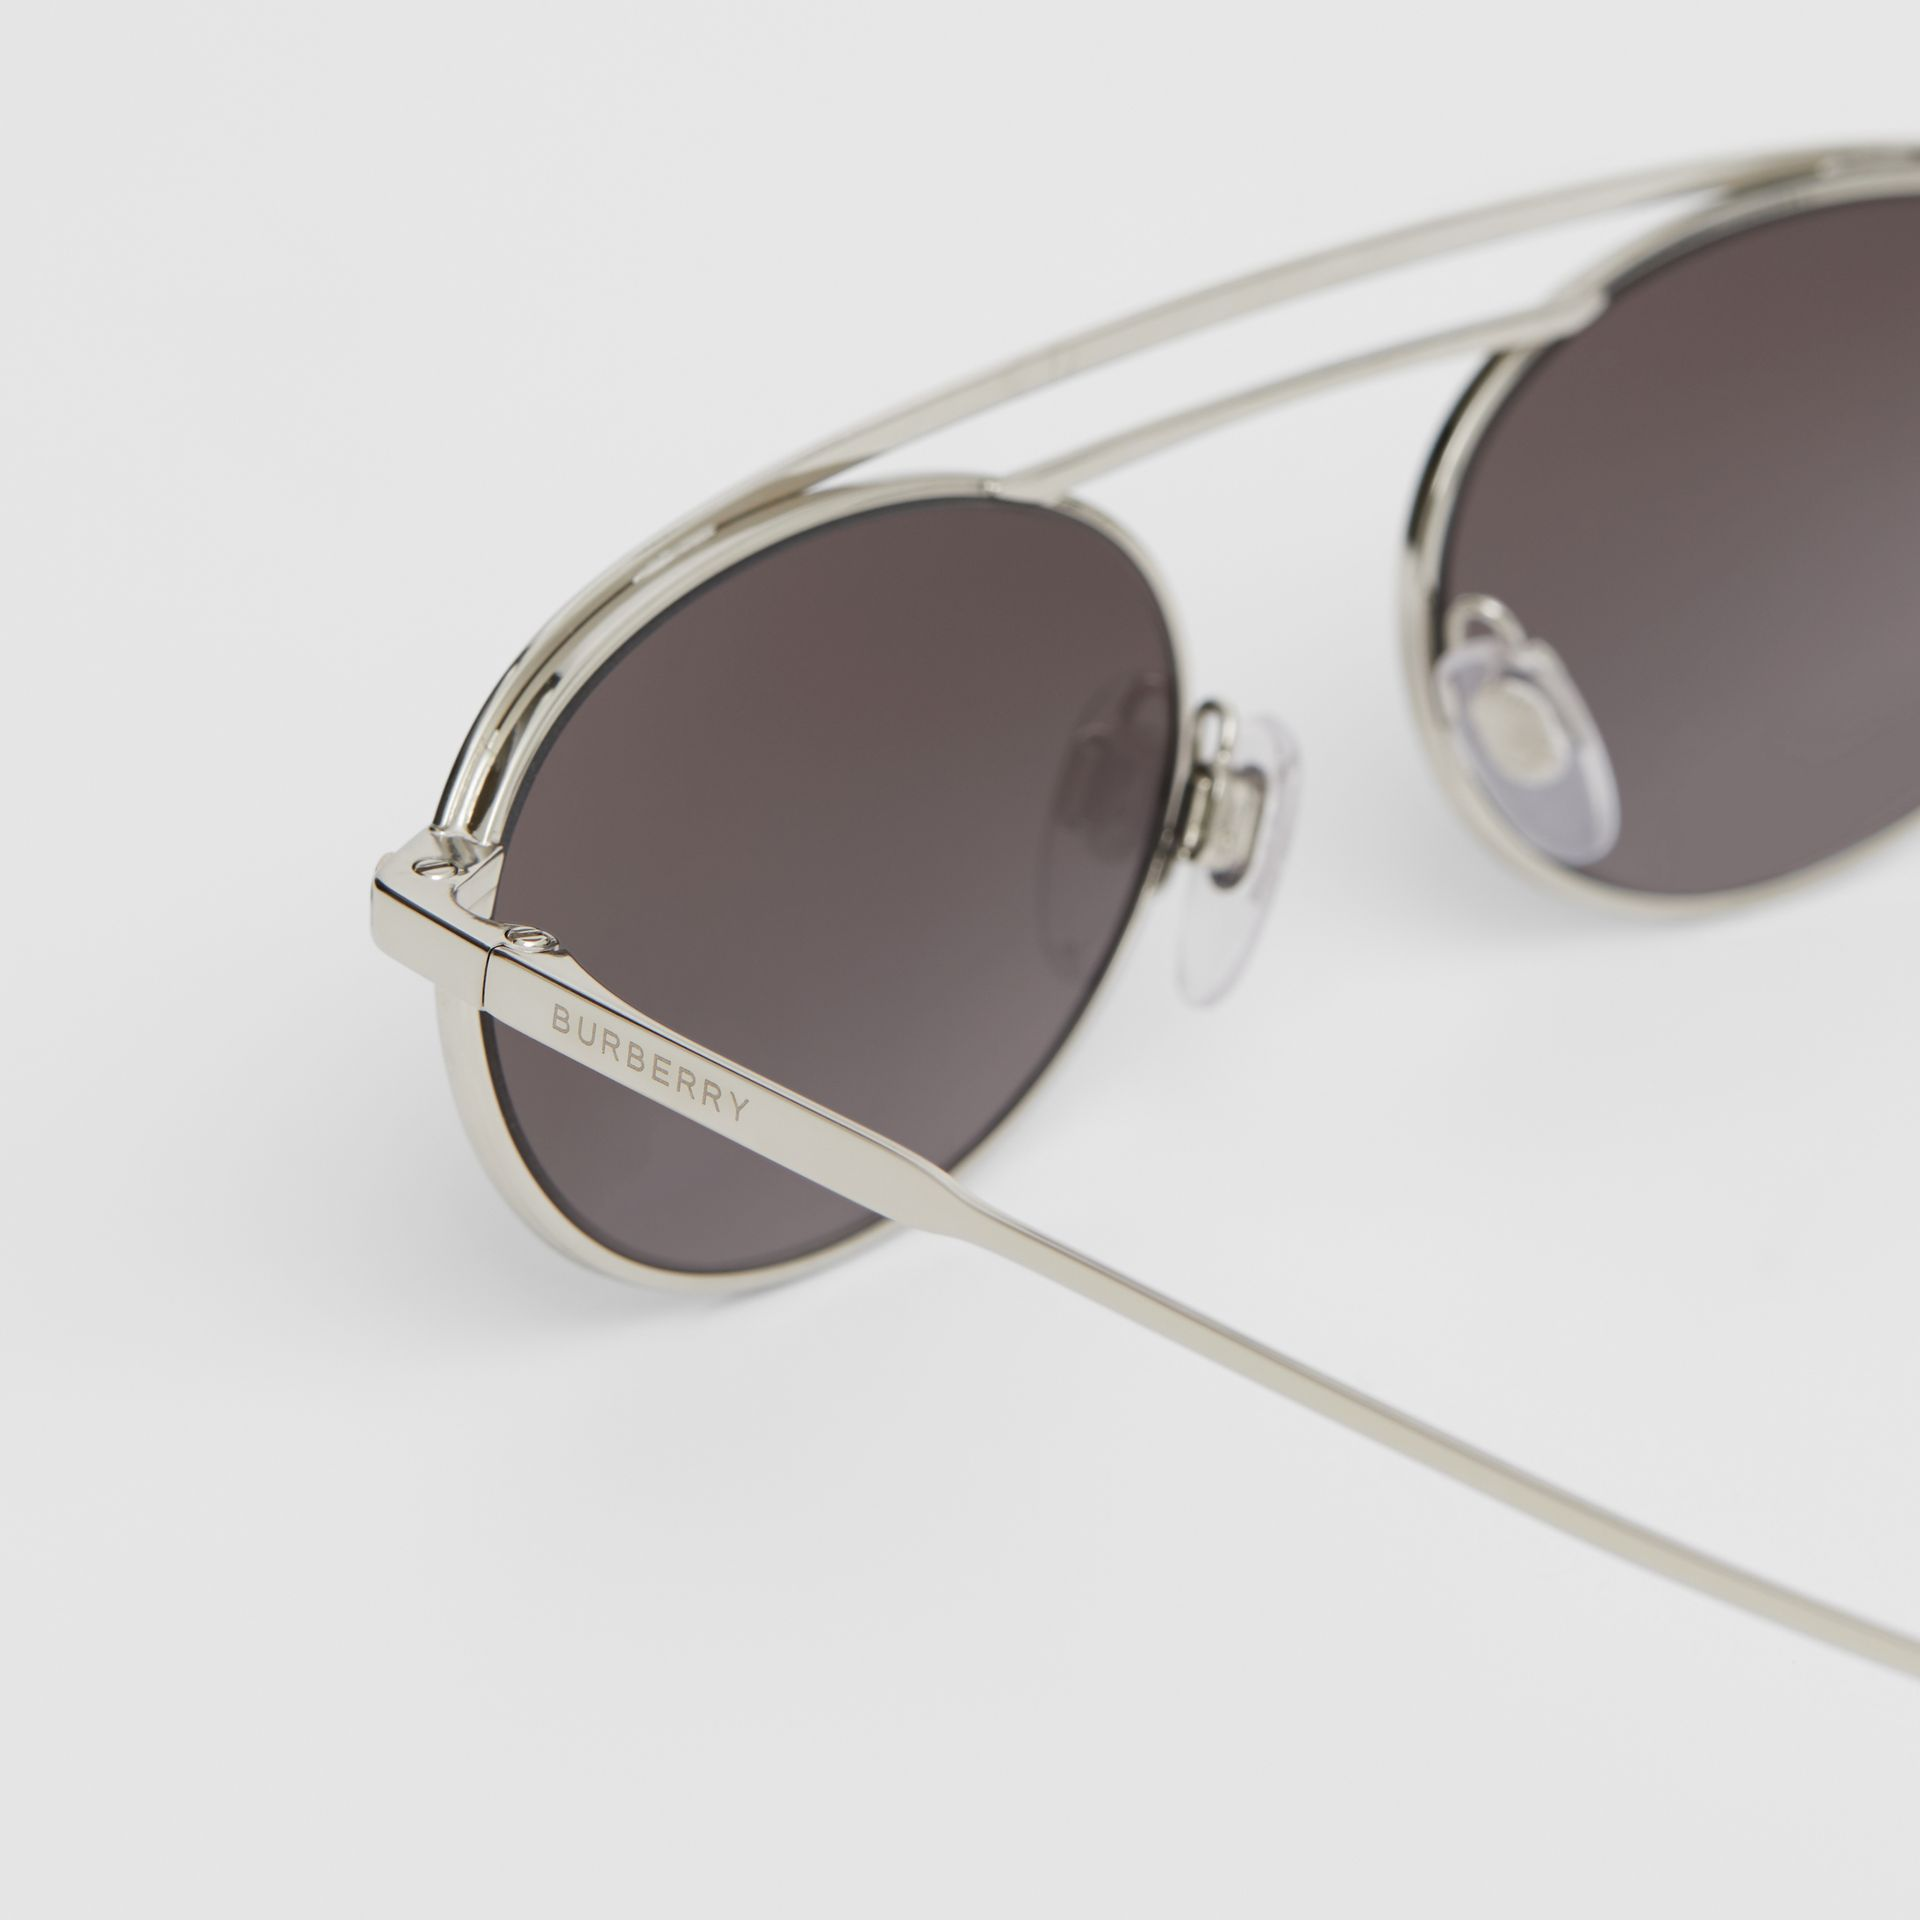 Oval Frame Sunglasses in Grey - Women   Burberry - gallery image 1